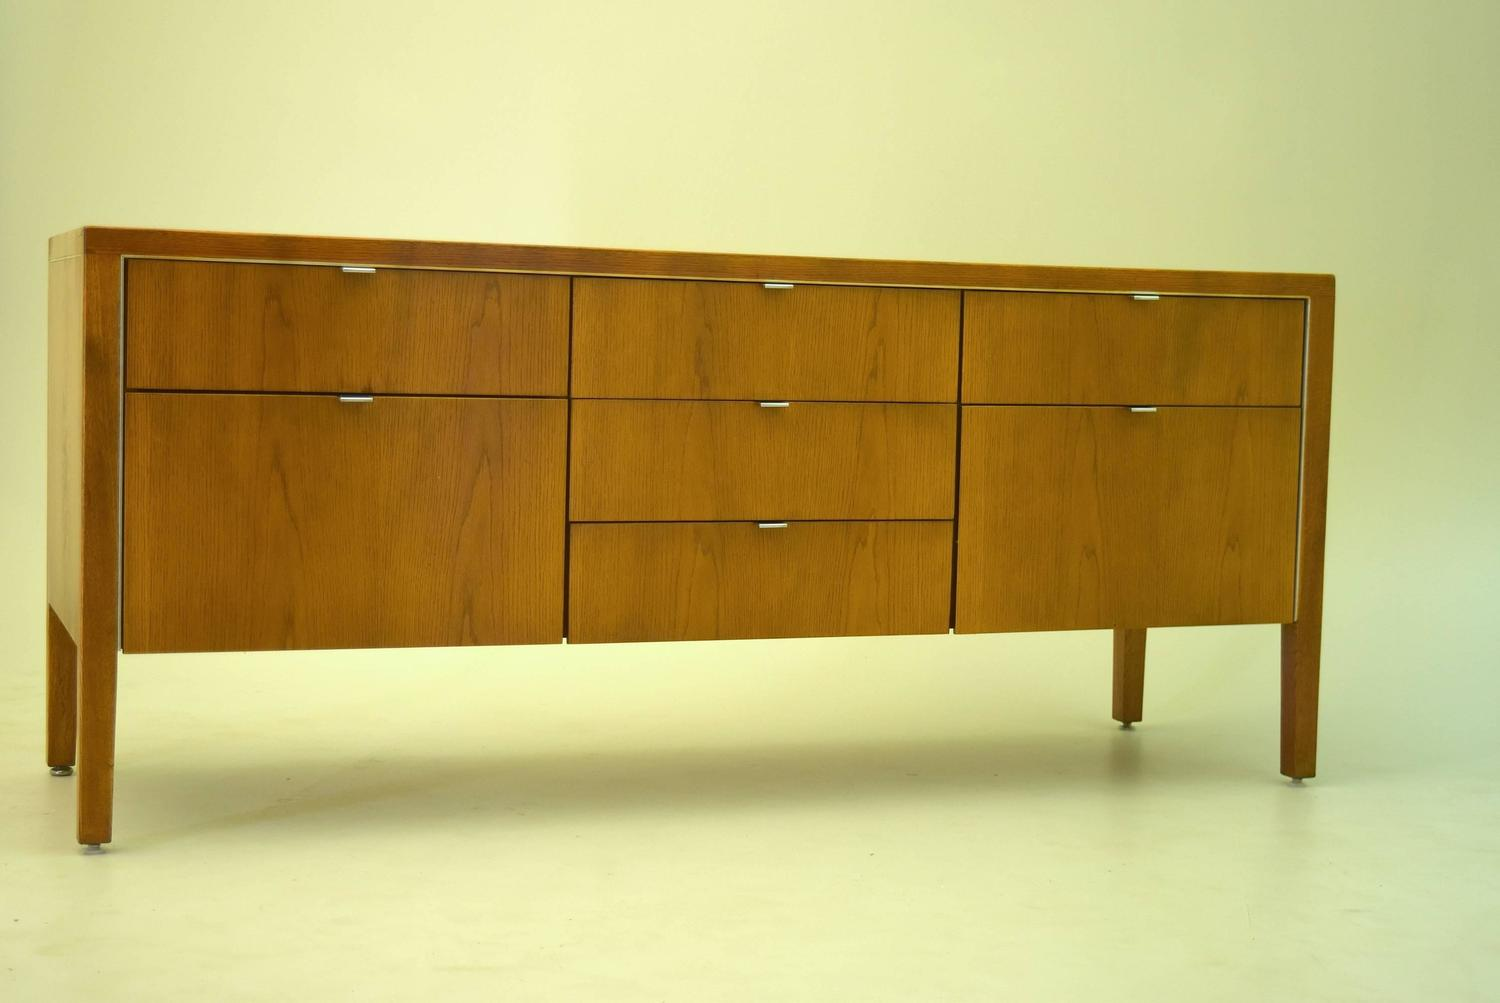 Oak Credenza By Domore Stow Davis For Ashland Oil